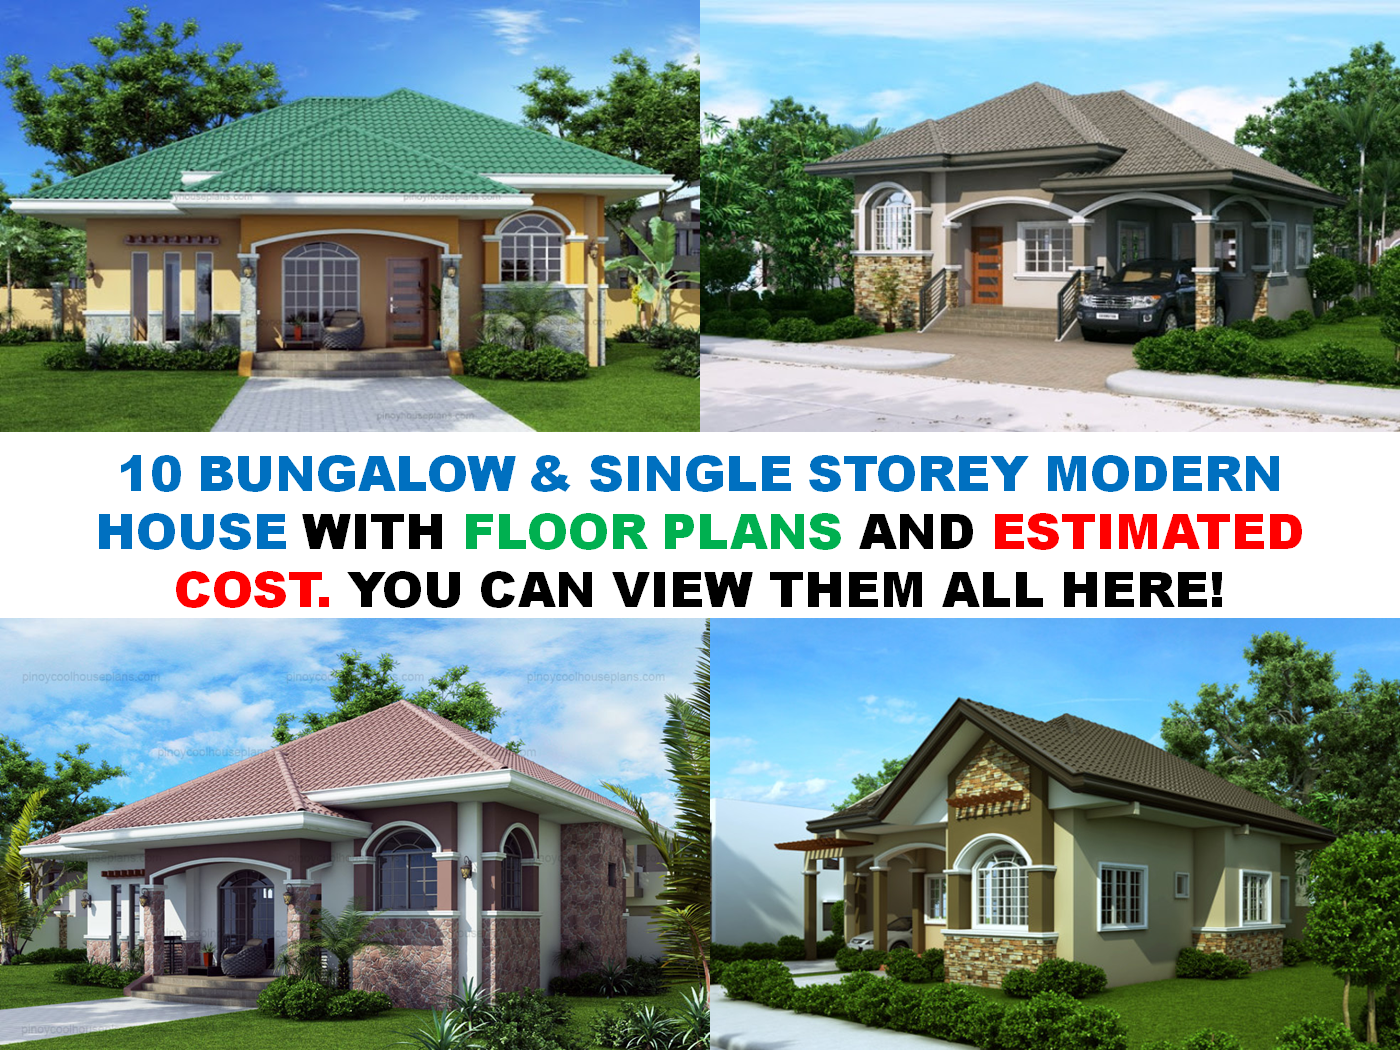 10 bungalow single story modern house with floor plans for Modern house cost